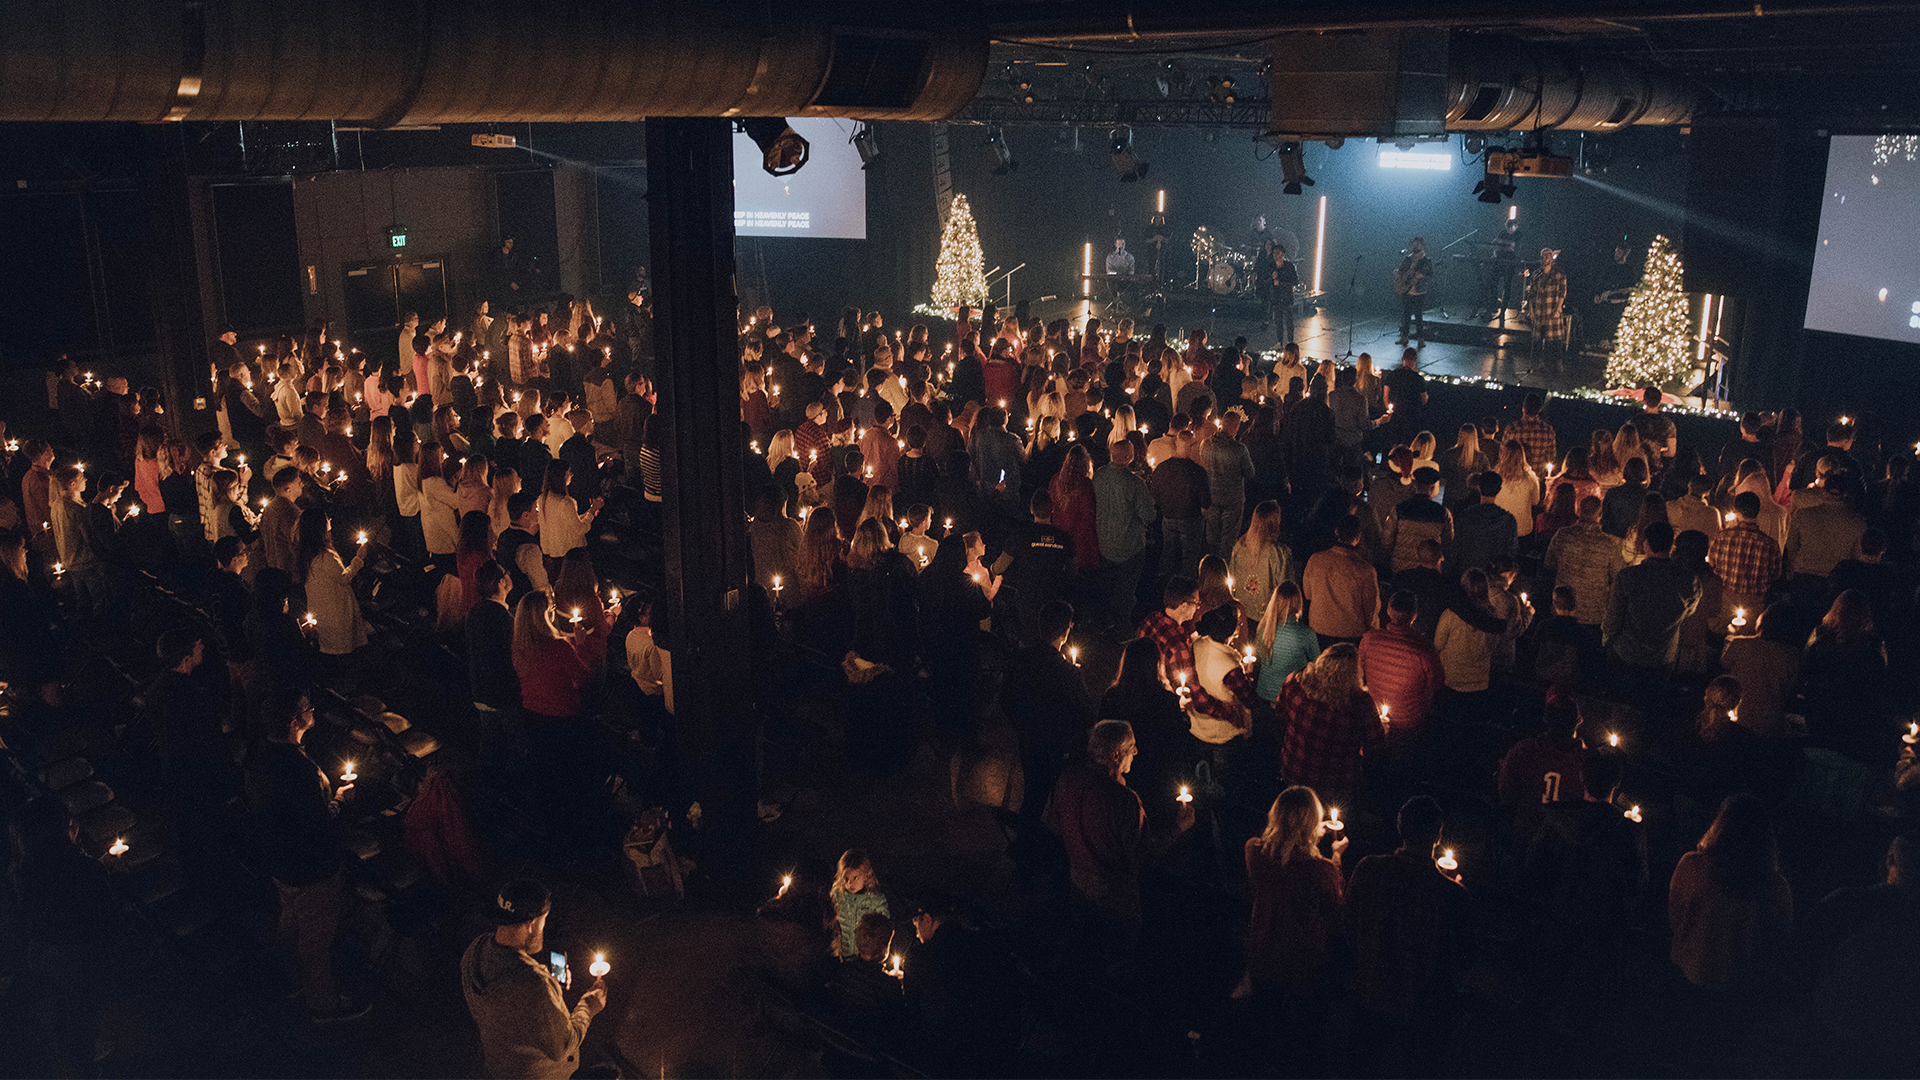 Sunday 23rd December 2018 Christmas Candlelight Service